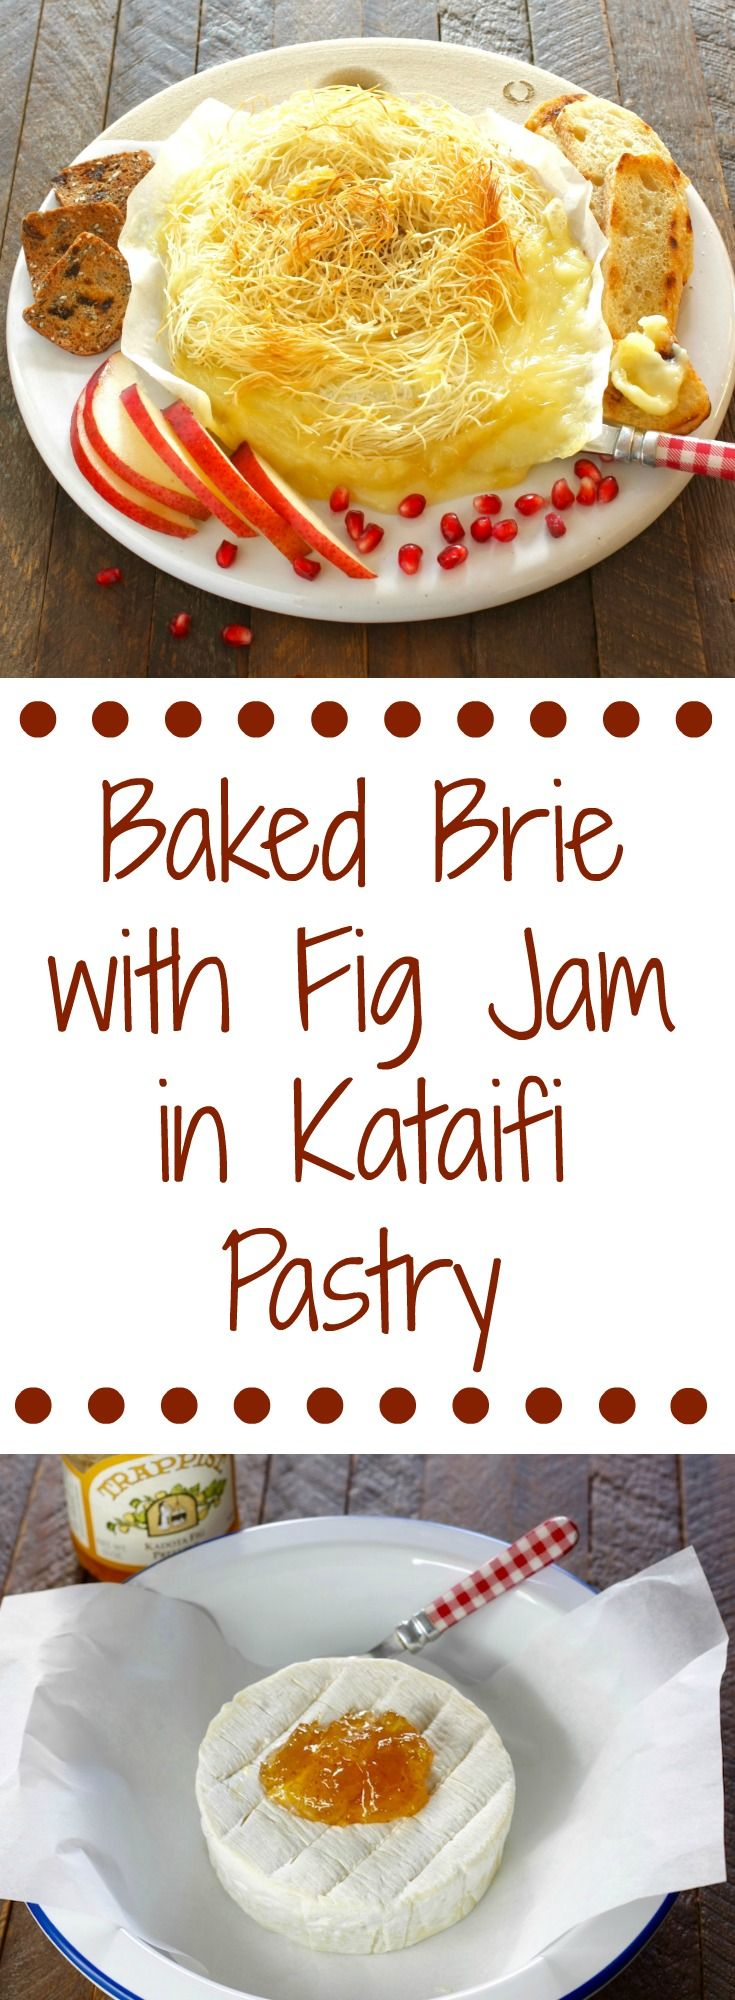 Baked brie with fig jam in kataifi pastry [www.marilenaskitchen.com]